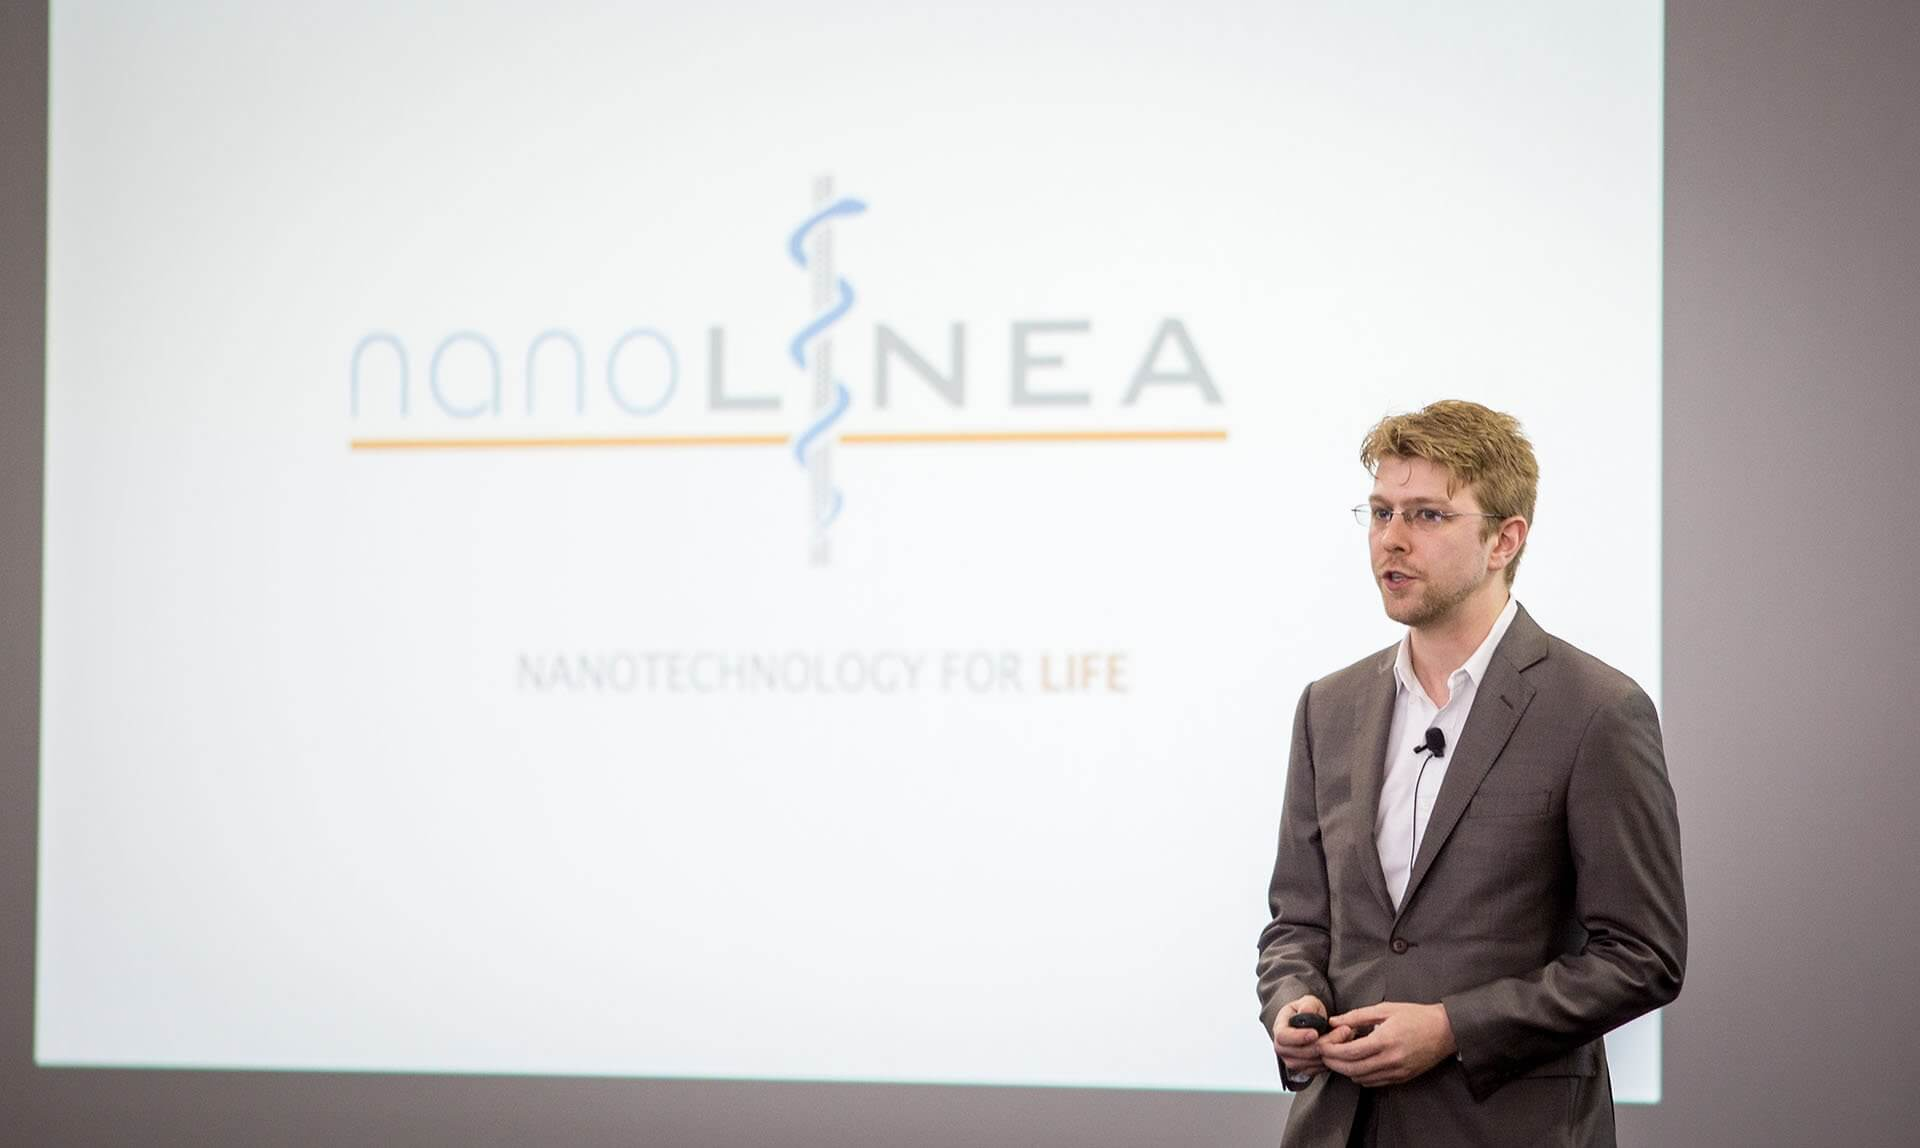 Colin Young, chief executive officer of NanoLinea.